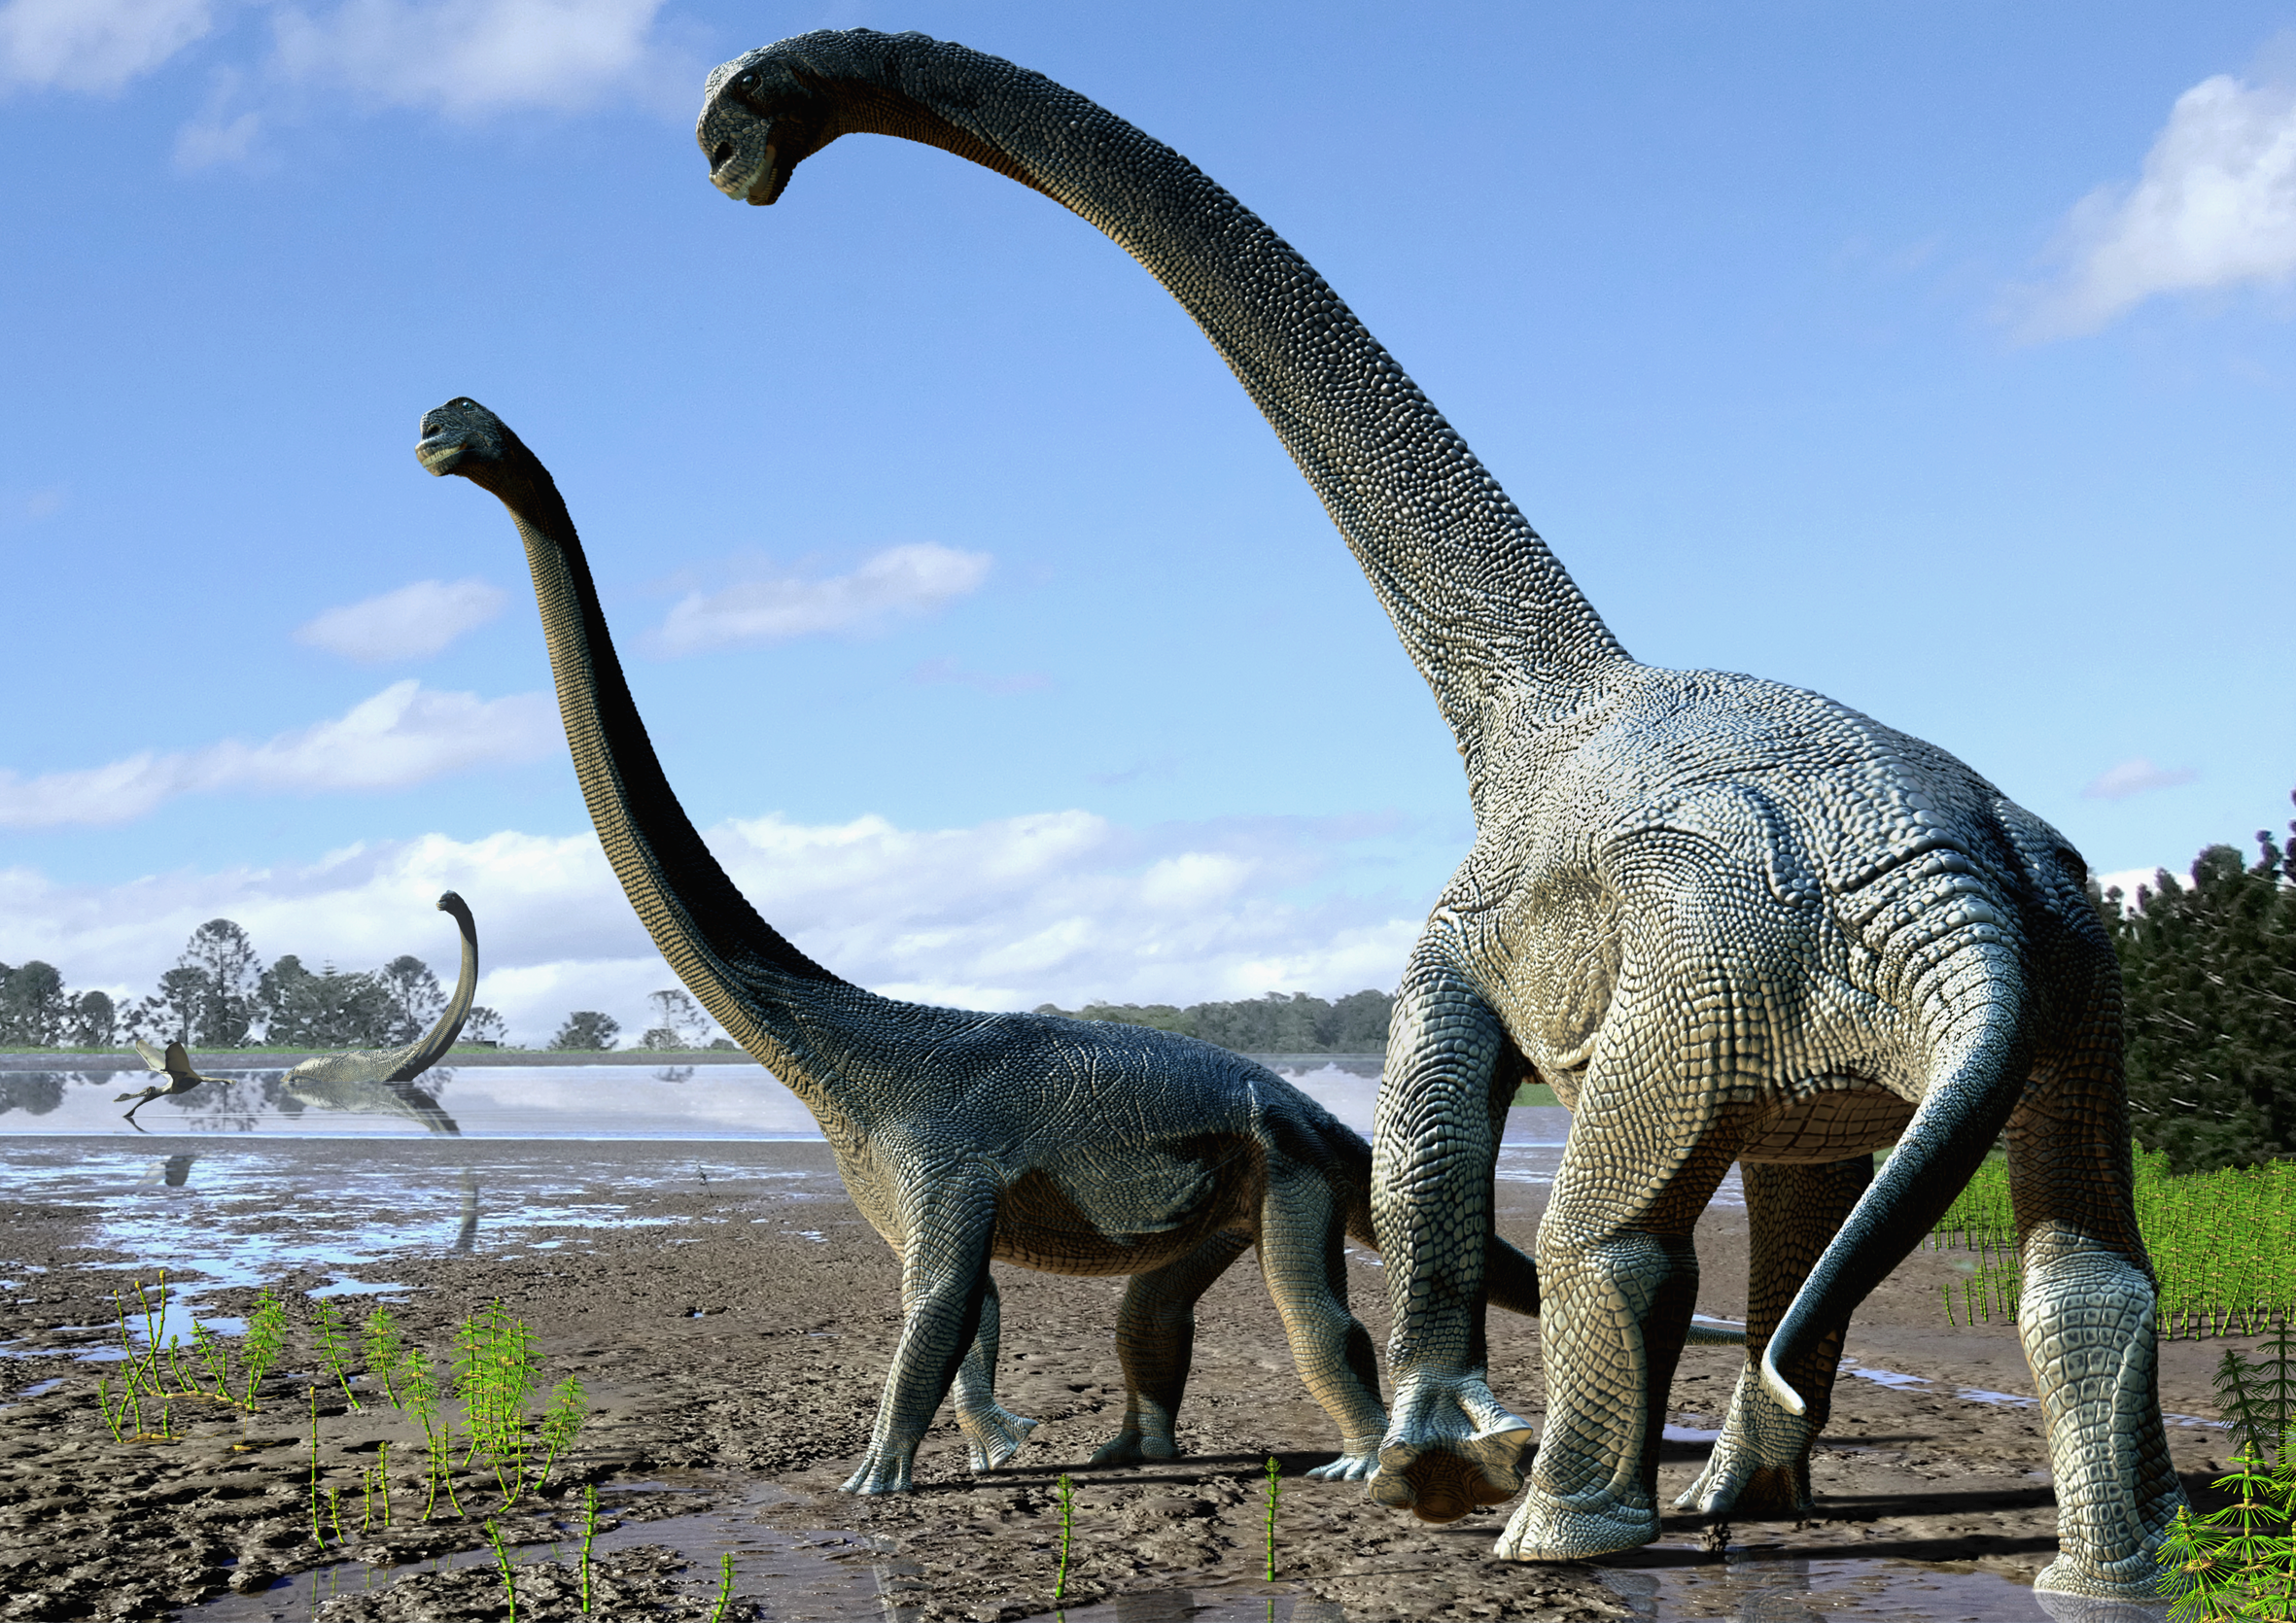 New Species of Dinosaur Identified in Australia